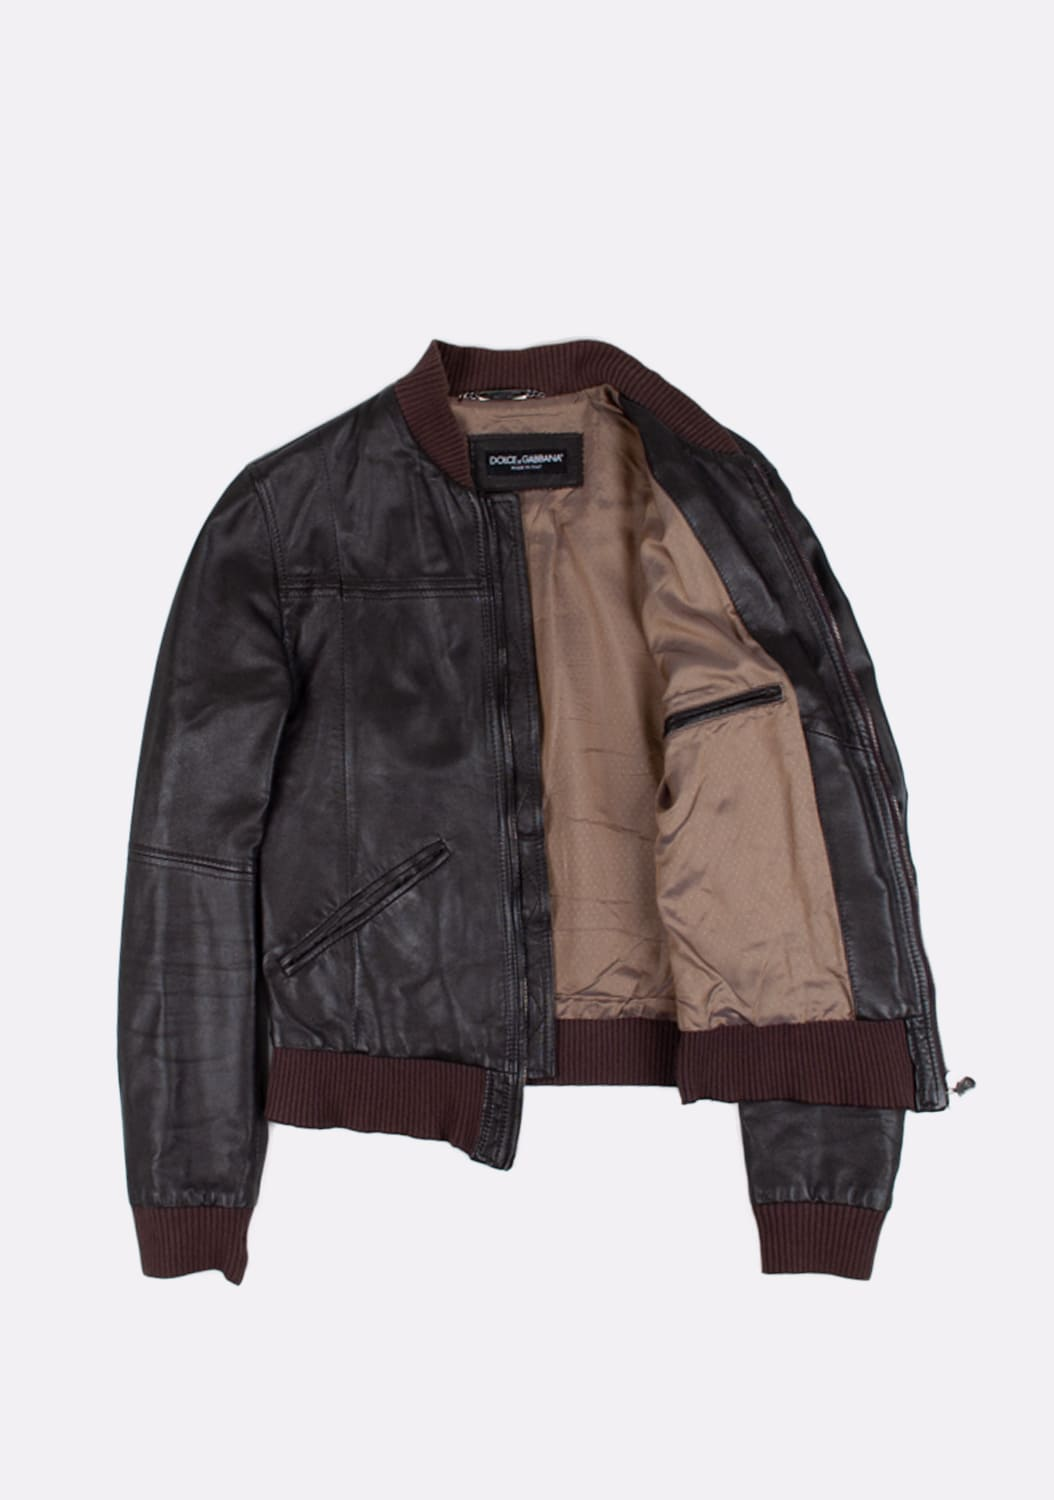 Dolce&Gabbana-Leather-Bomber-Men-Jacket-Size 46-ITA-urocklt (2)